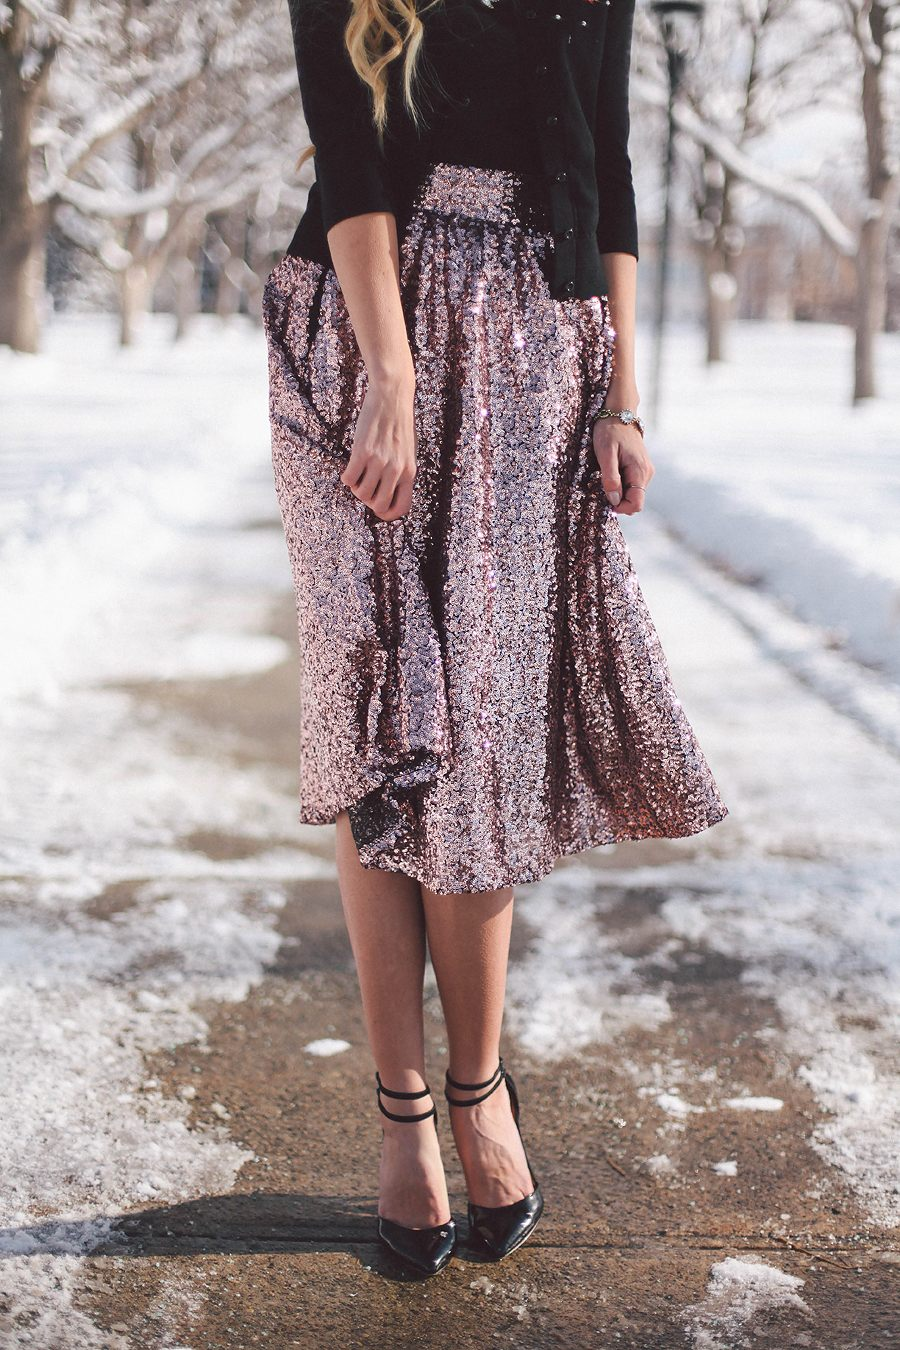 Holiday Series: Sequin Skirt